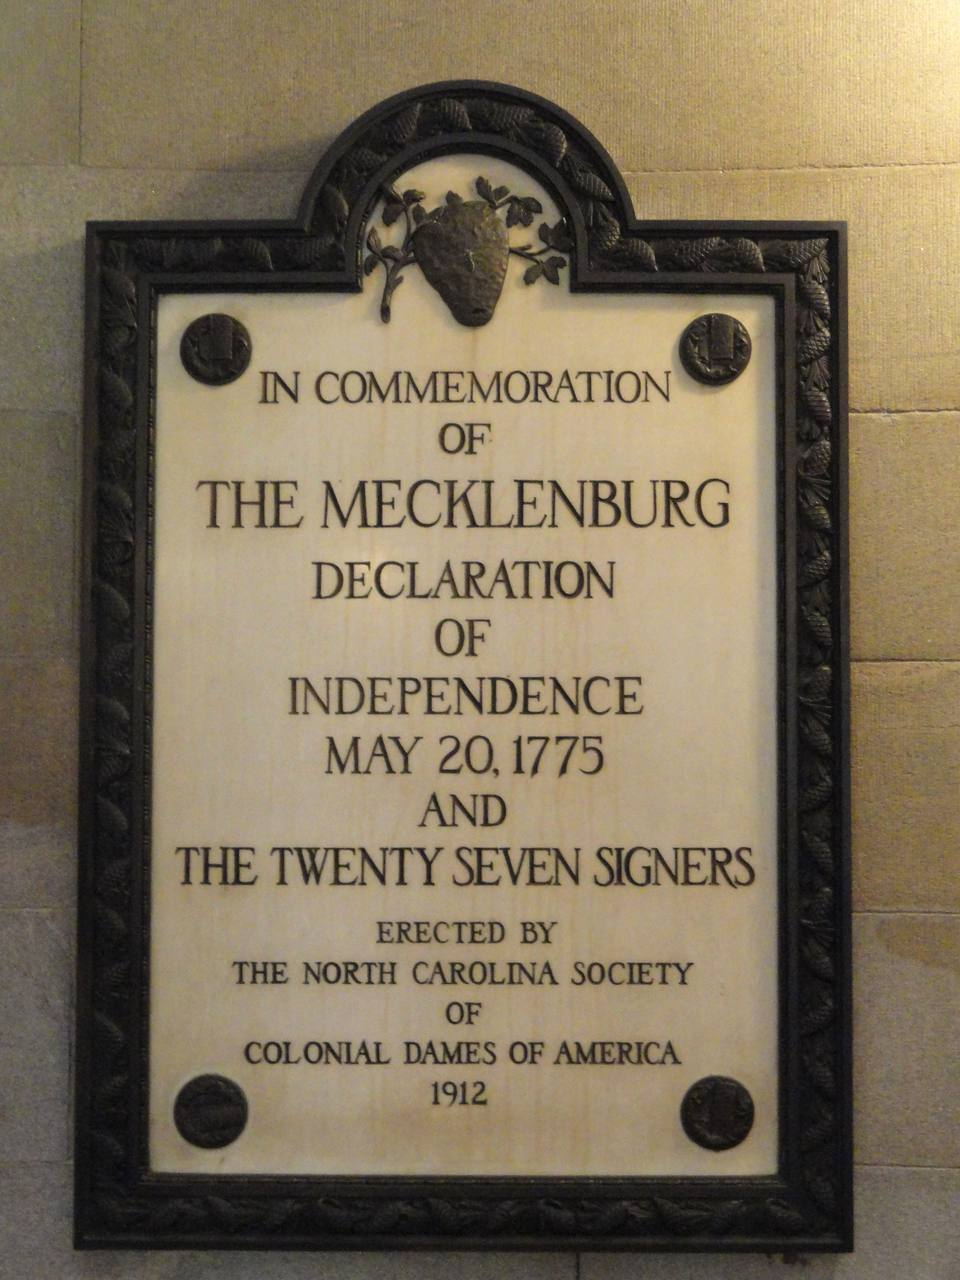 The Mecklenburg Declaration of Independence